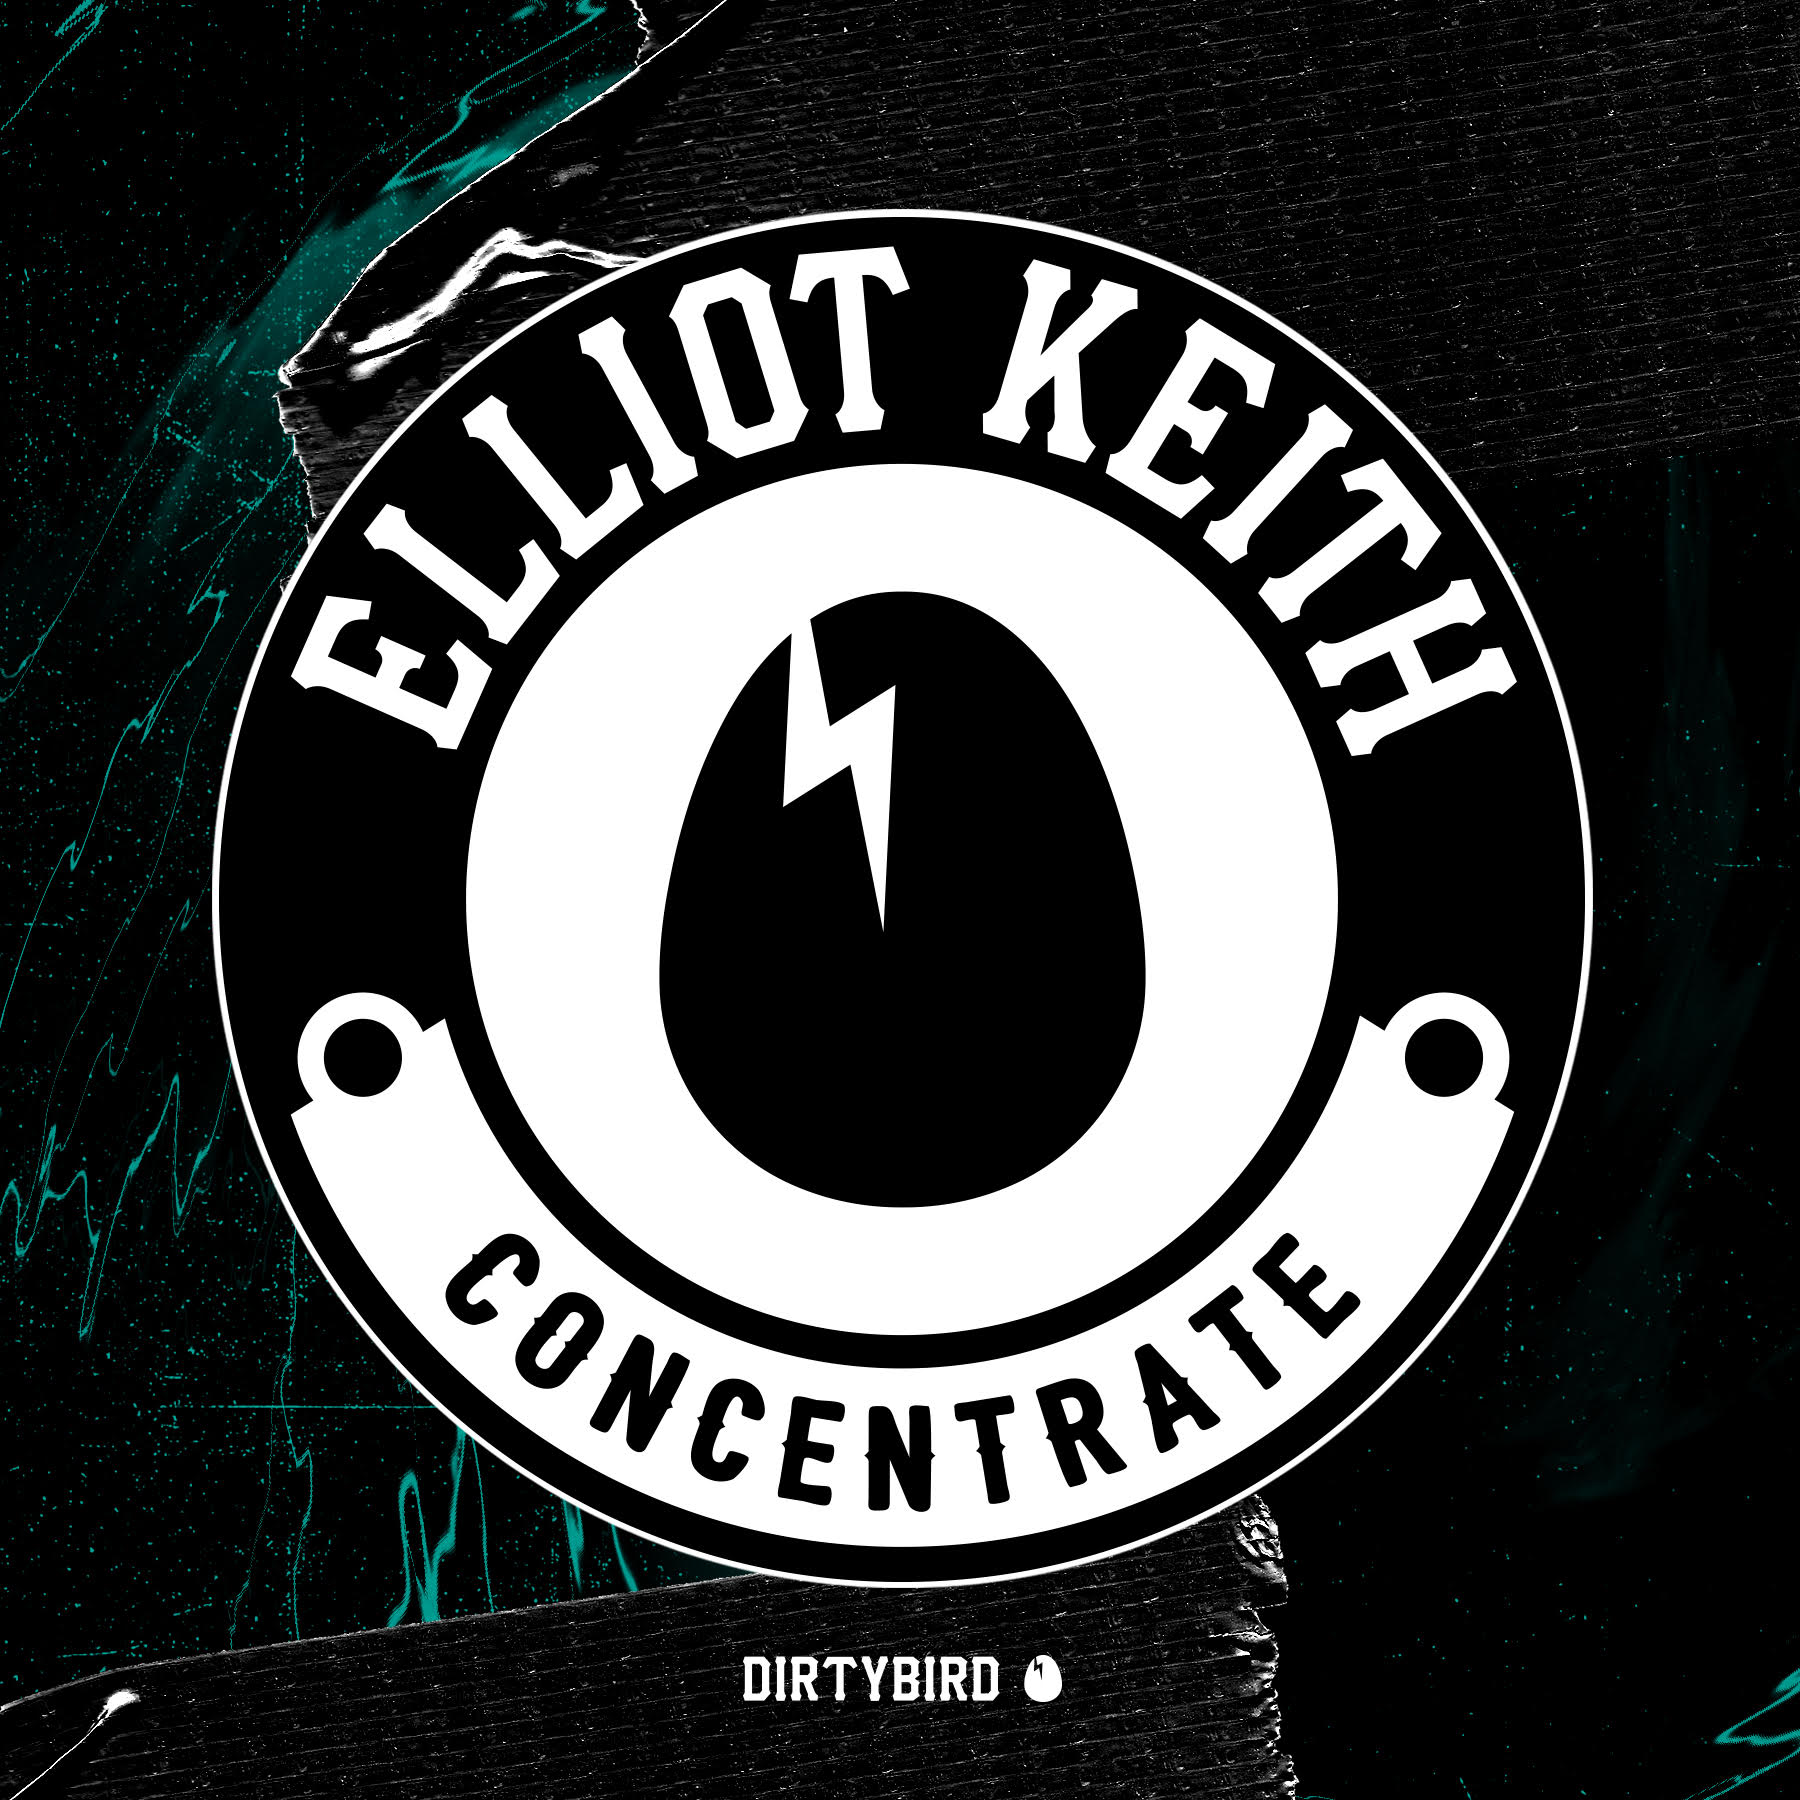 Elliot keith concentrate